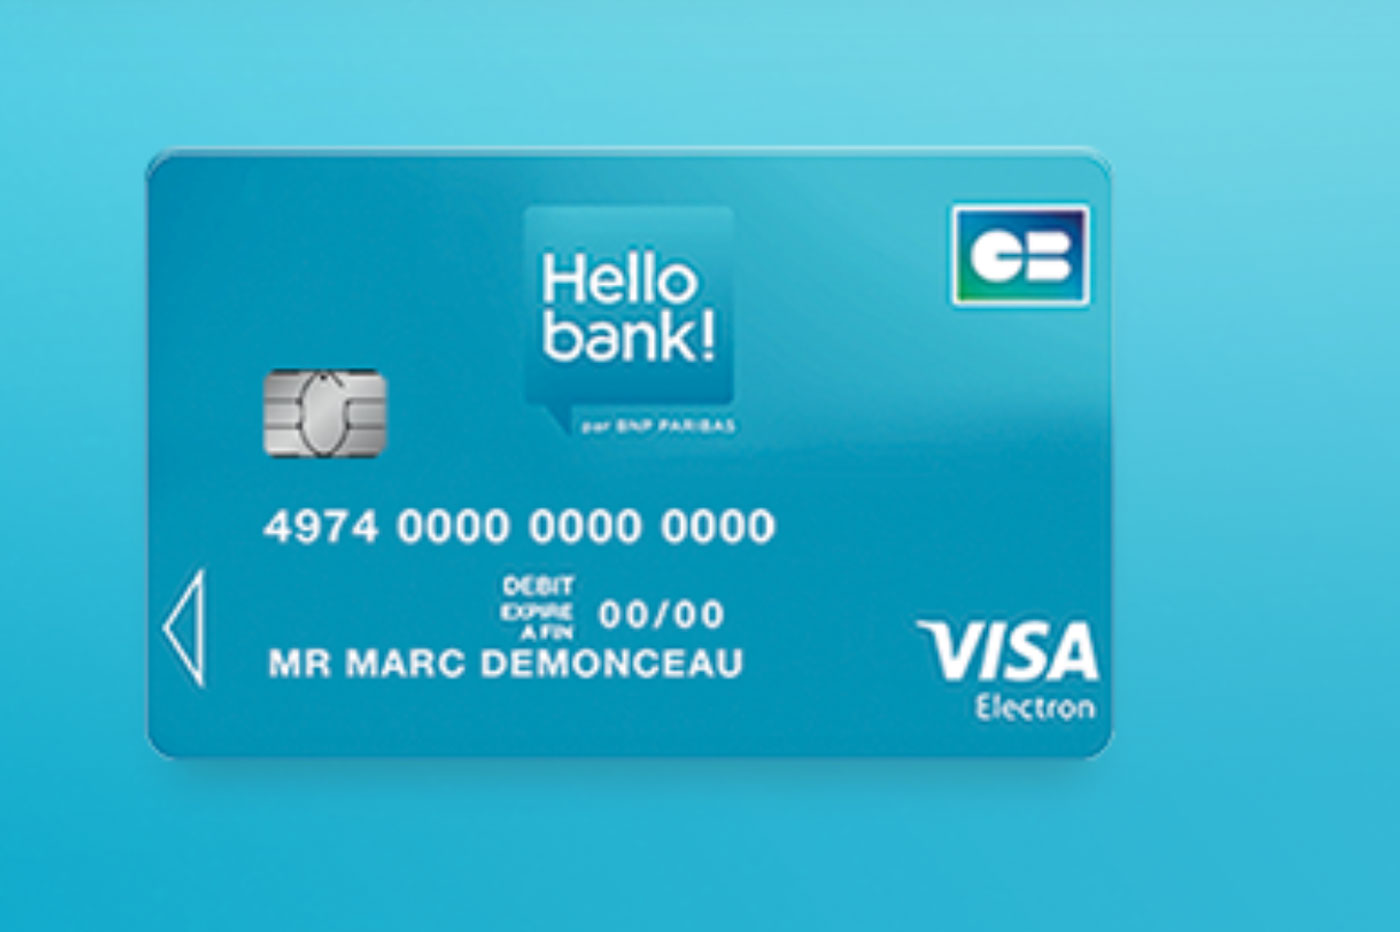 Carte Visa Electron Hello bank!